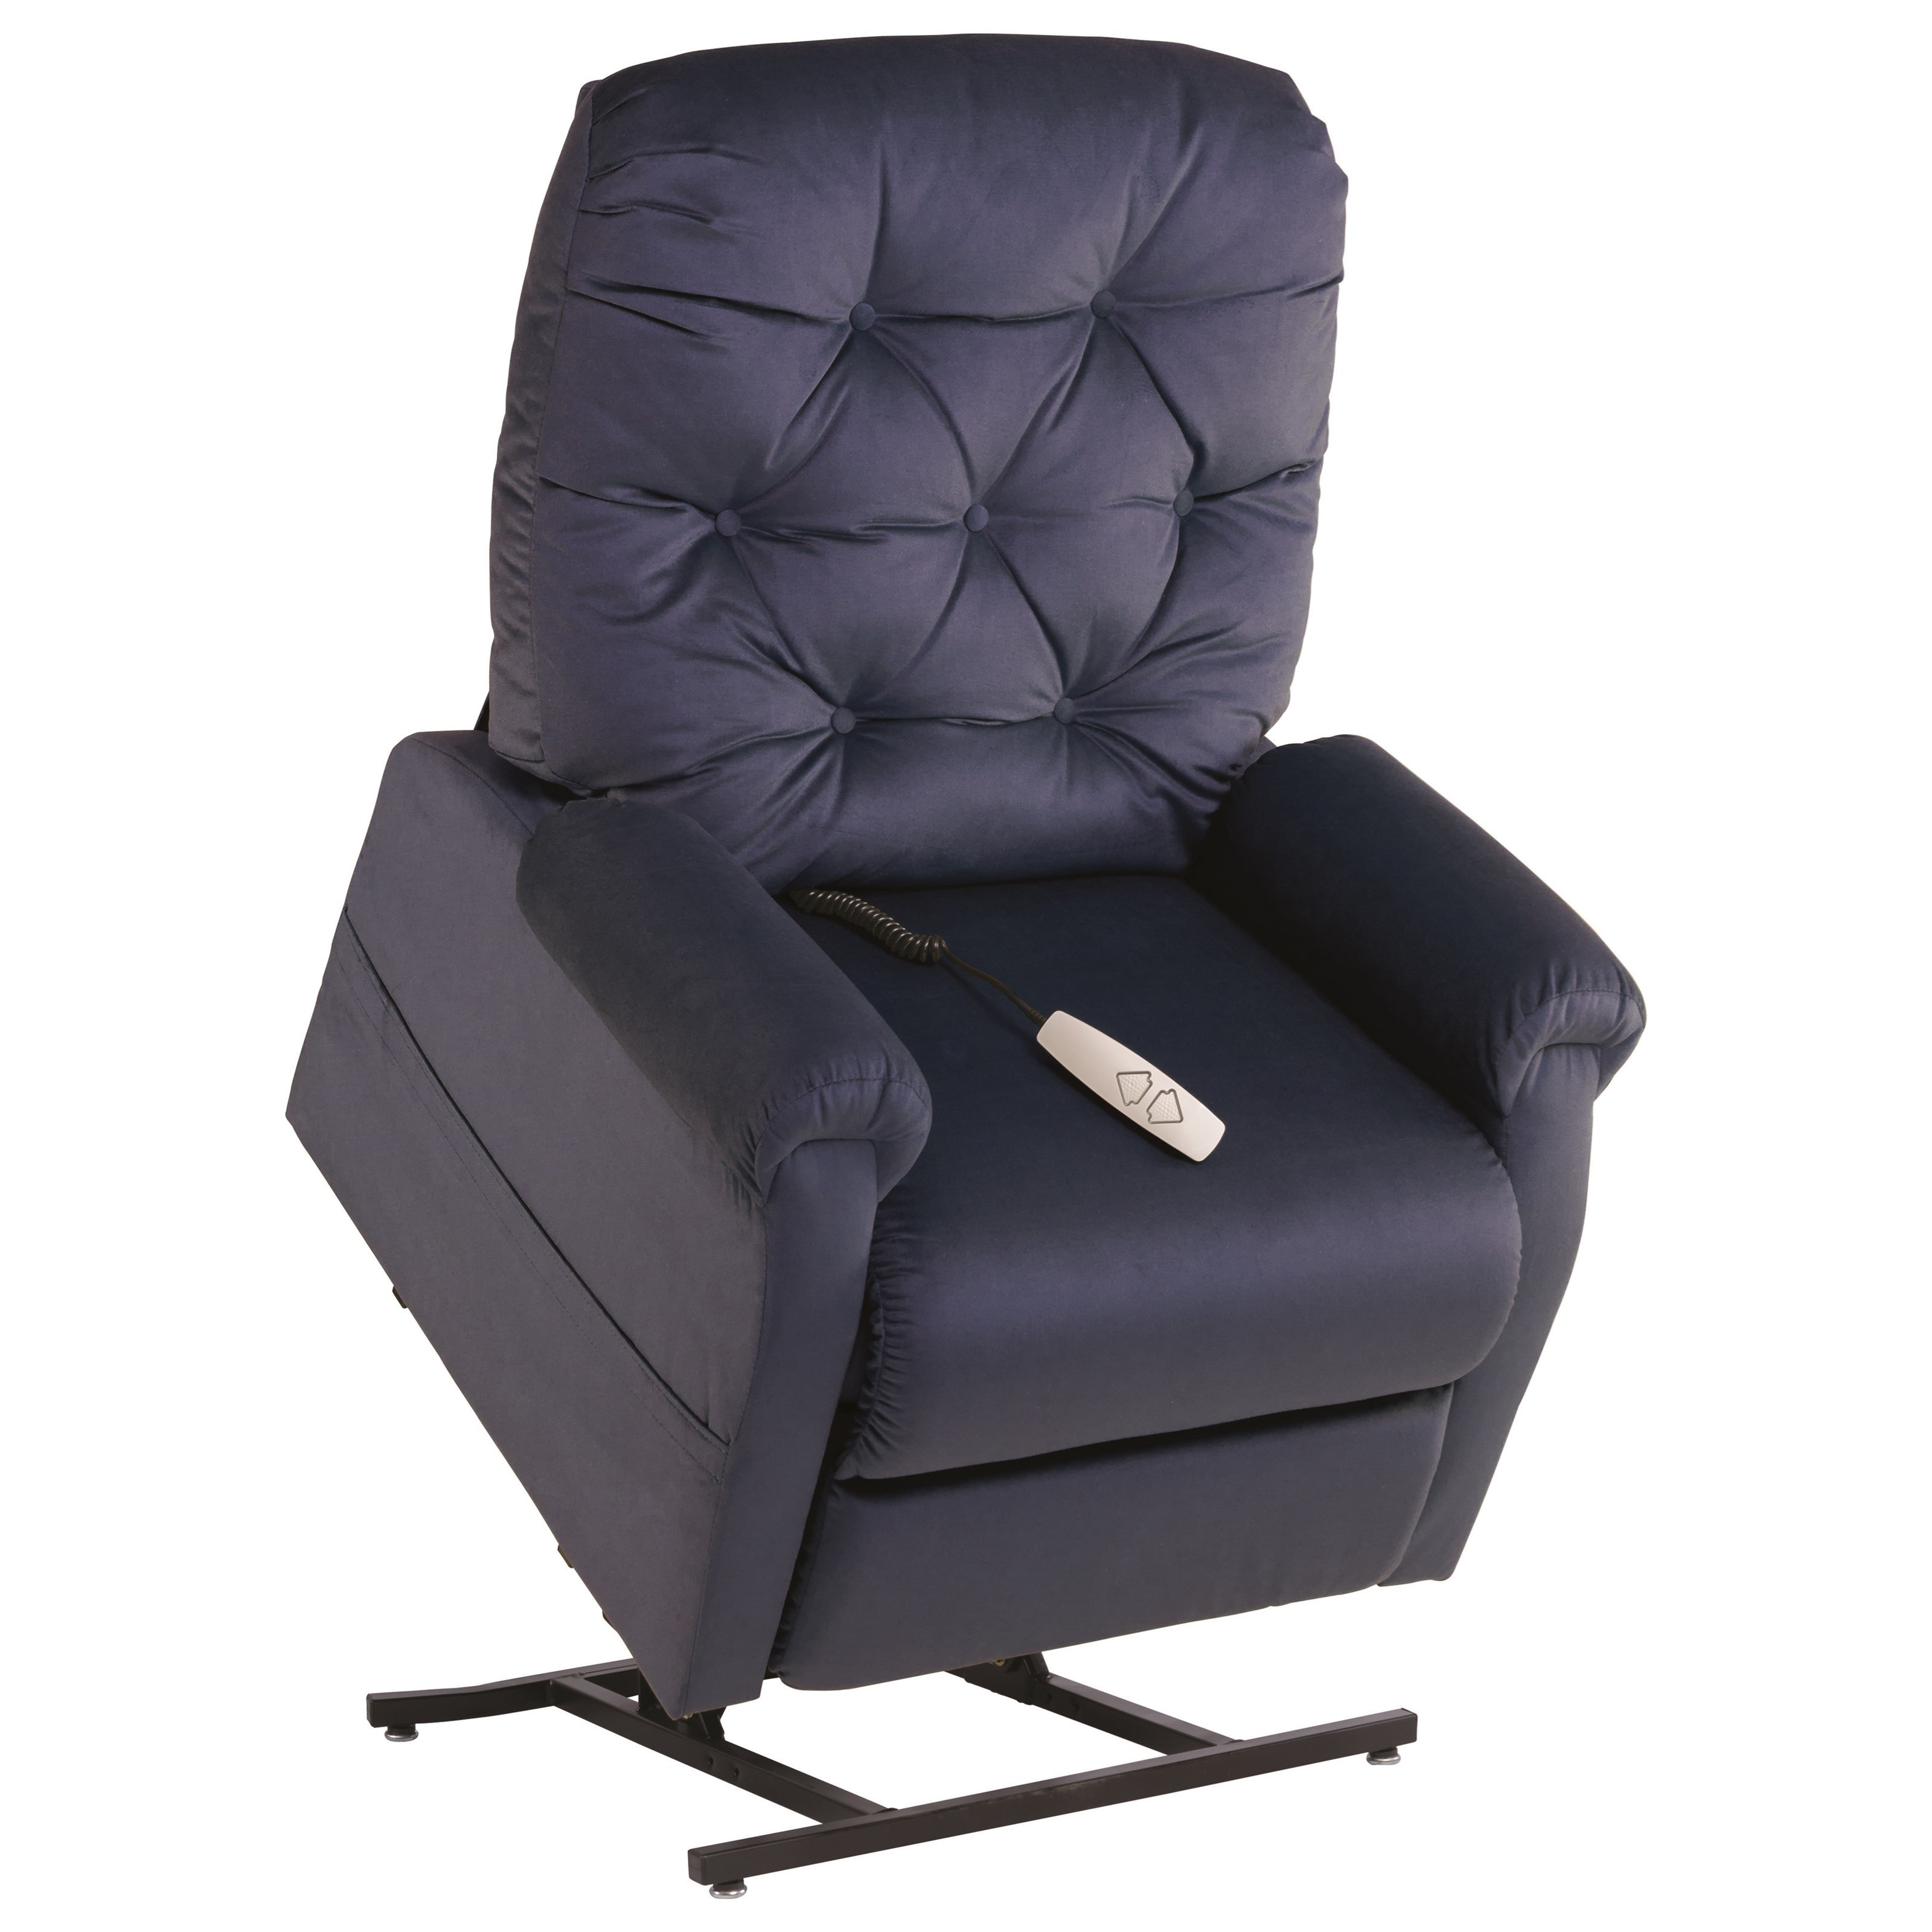 Ultimate Power Recliner Lift Chairs 3-Position Reclining Chaise Lounger - Item Number: LC-200-NA